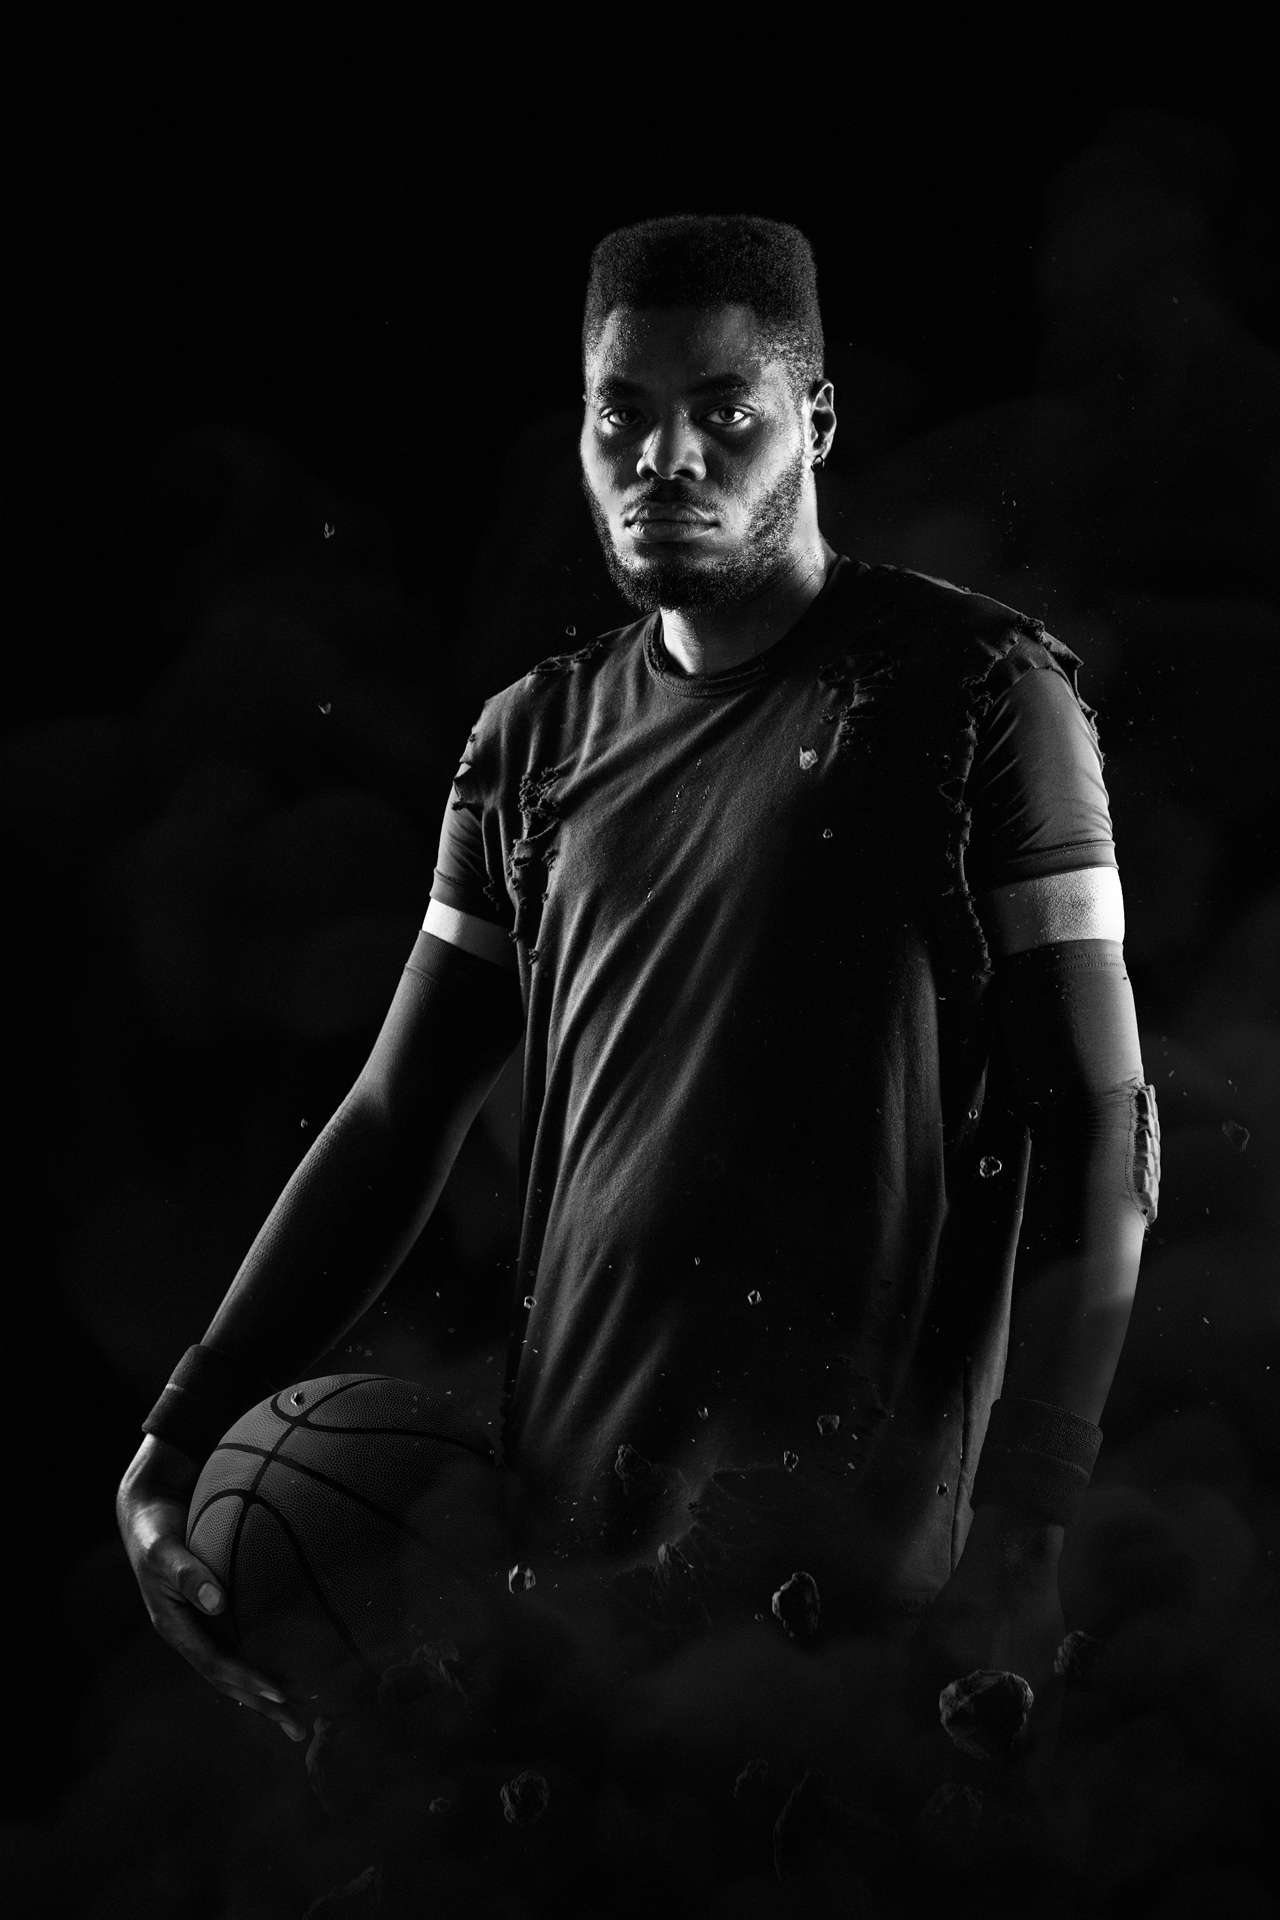 black man posing as basketball player looking at camera holding basket ball low lighting black and white by Simon Duhamel for W-Hoop